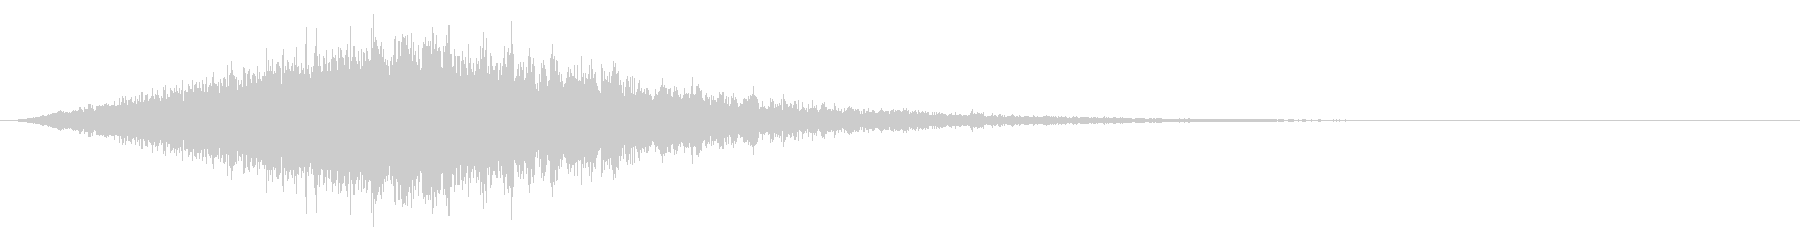 Sound of chanting or activating magic # 14's unreproduced waveform